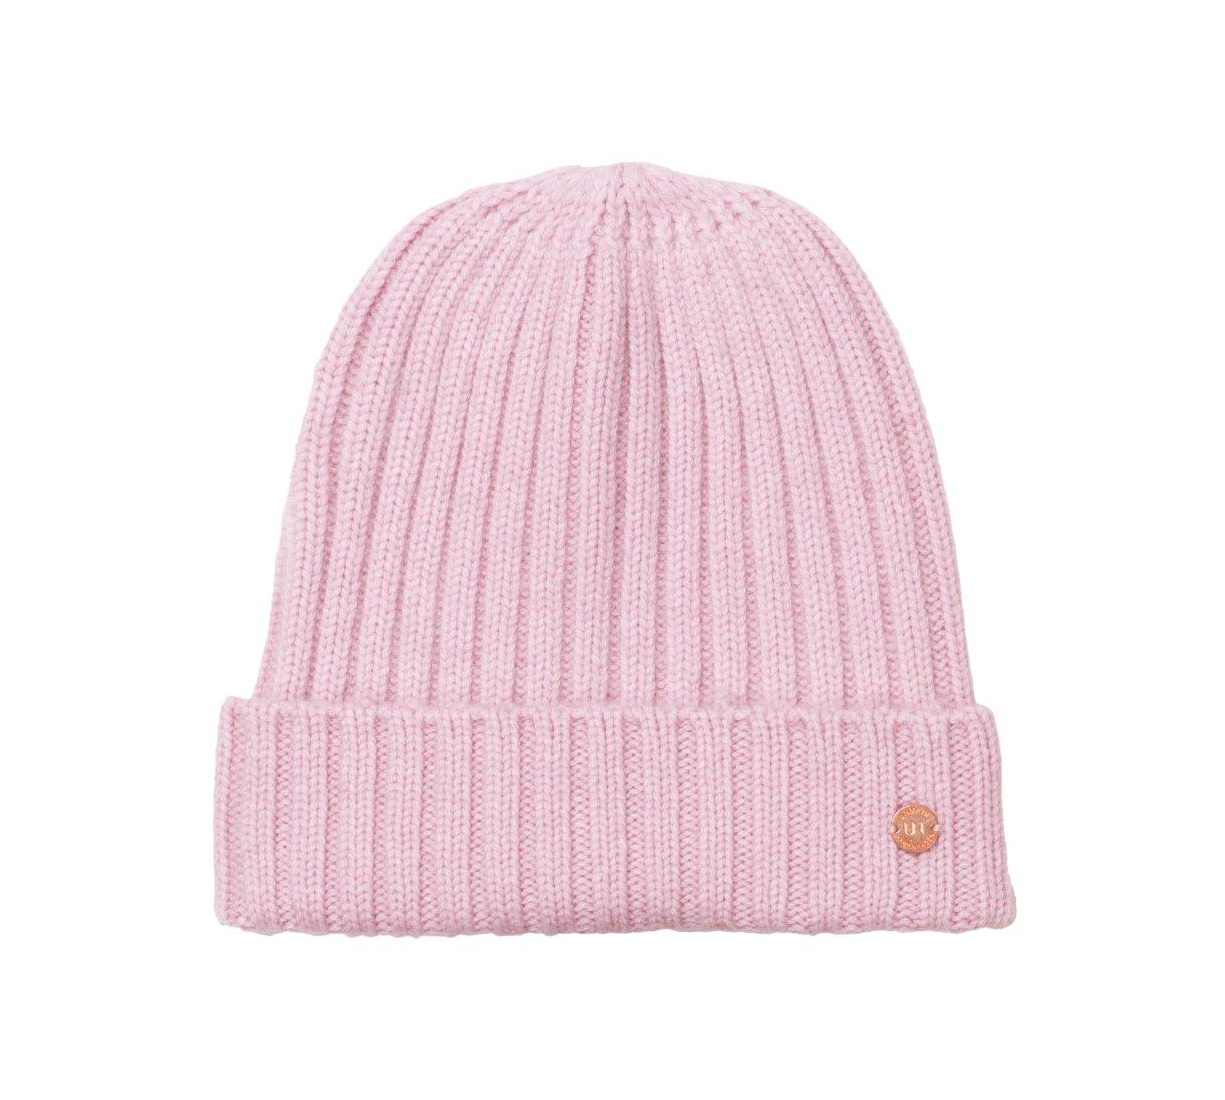 UNMADE Karly Hat pink